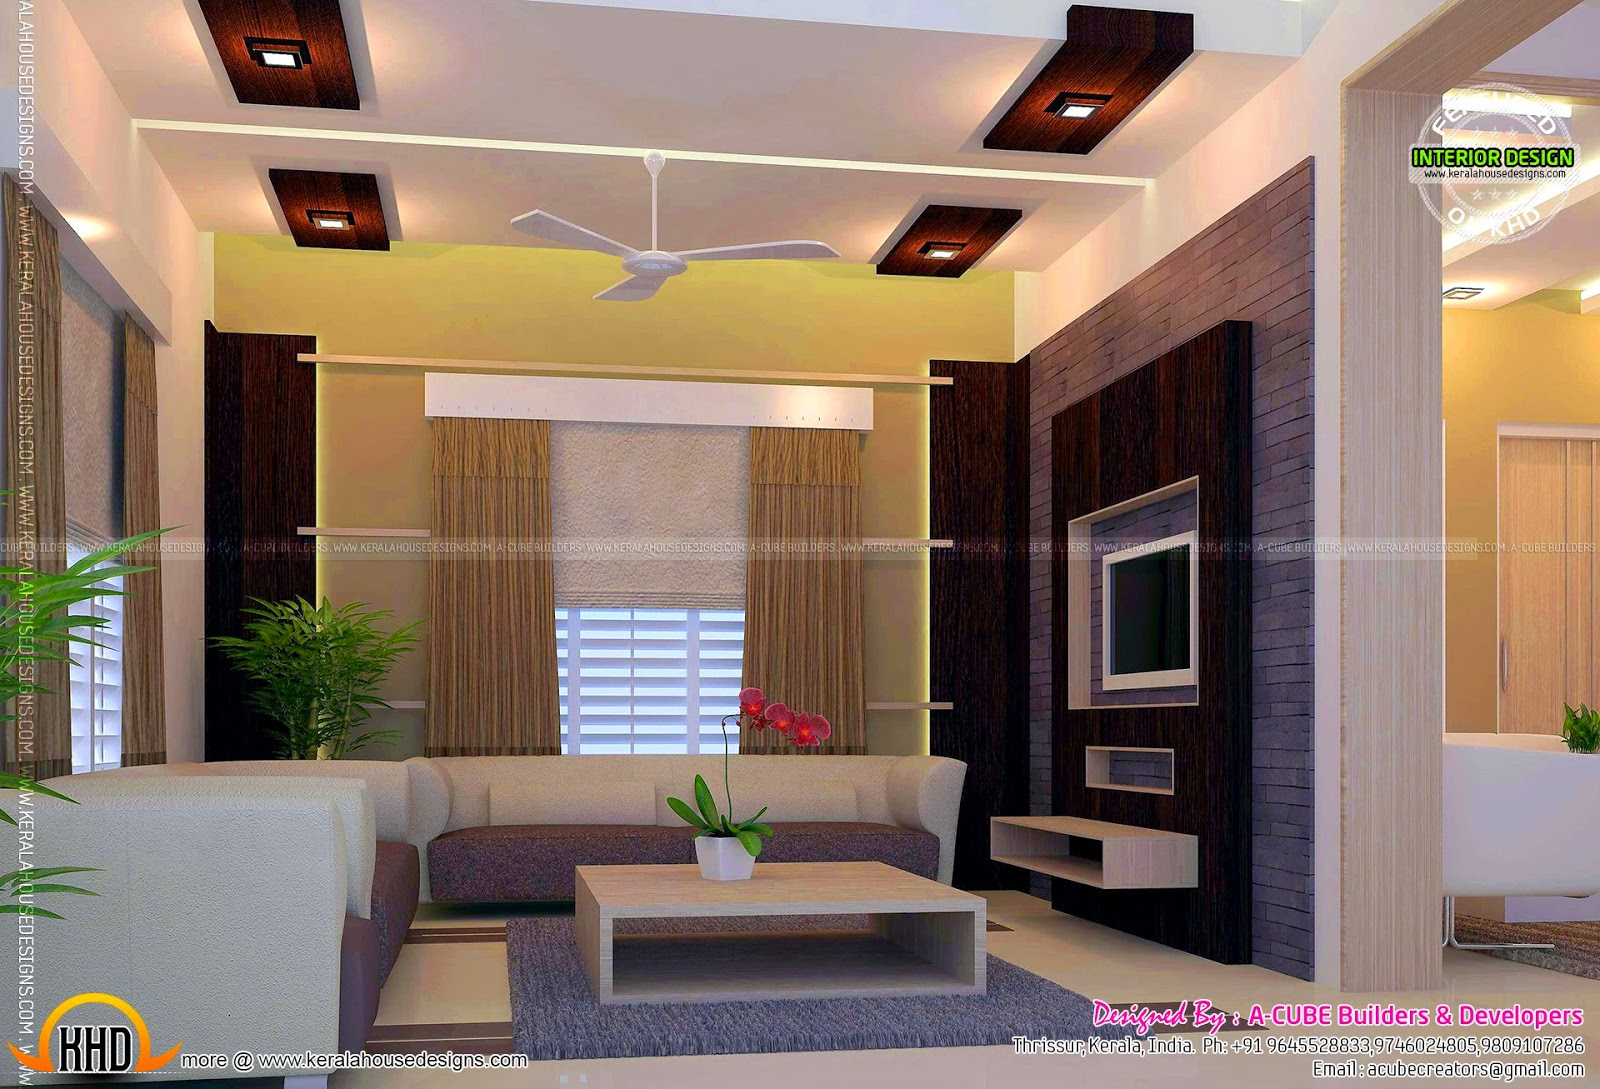 ... Kerala Style Home Designs Amp. Living Interior